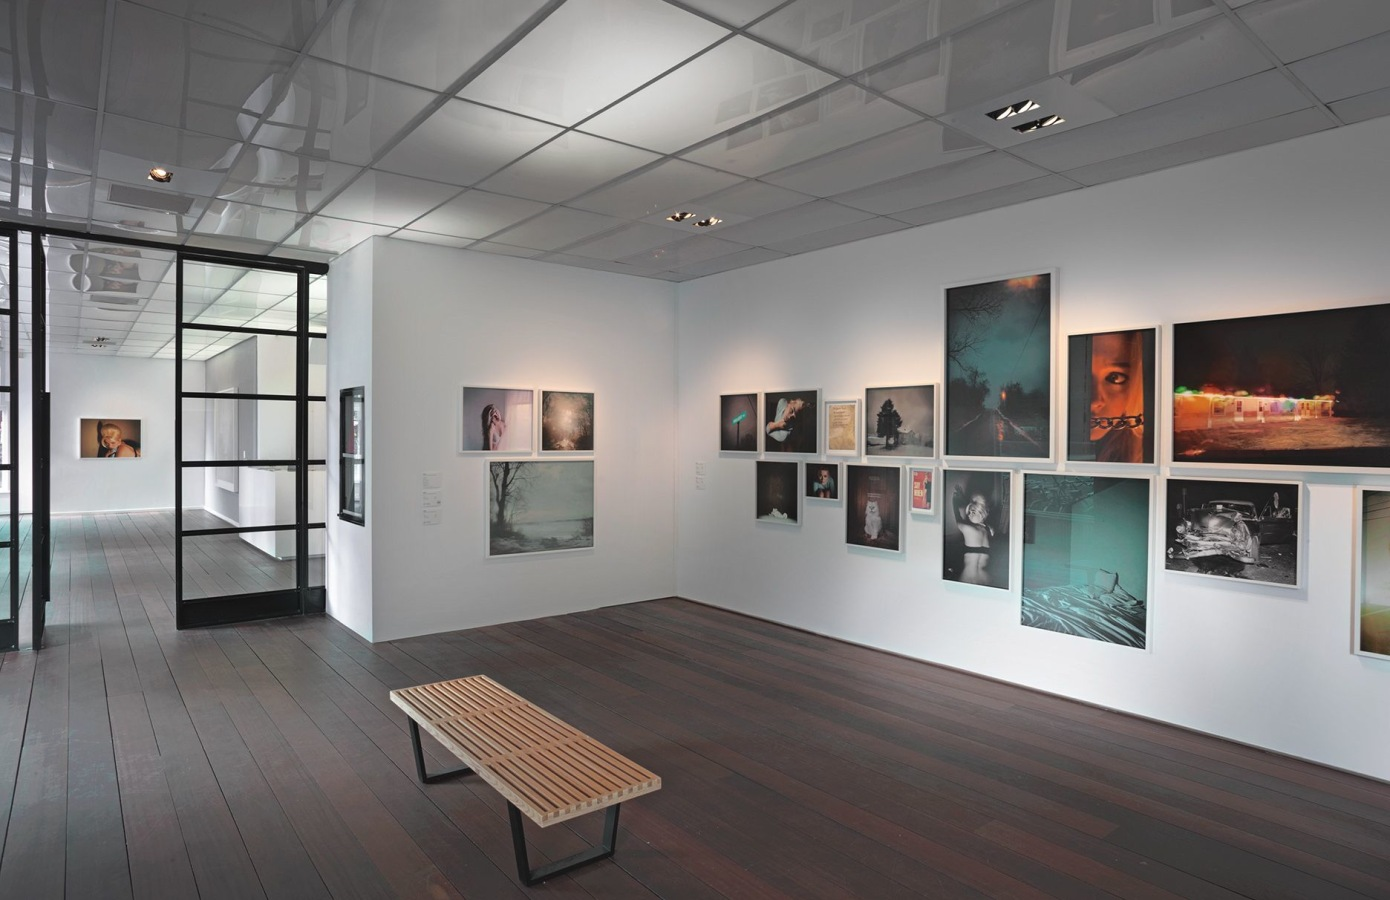 Selections From A Survey: 'Khrystyna's World', Todd Hido,